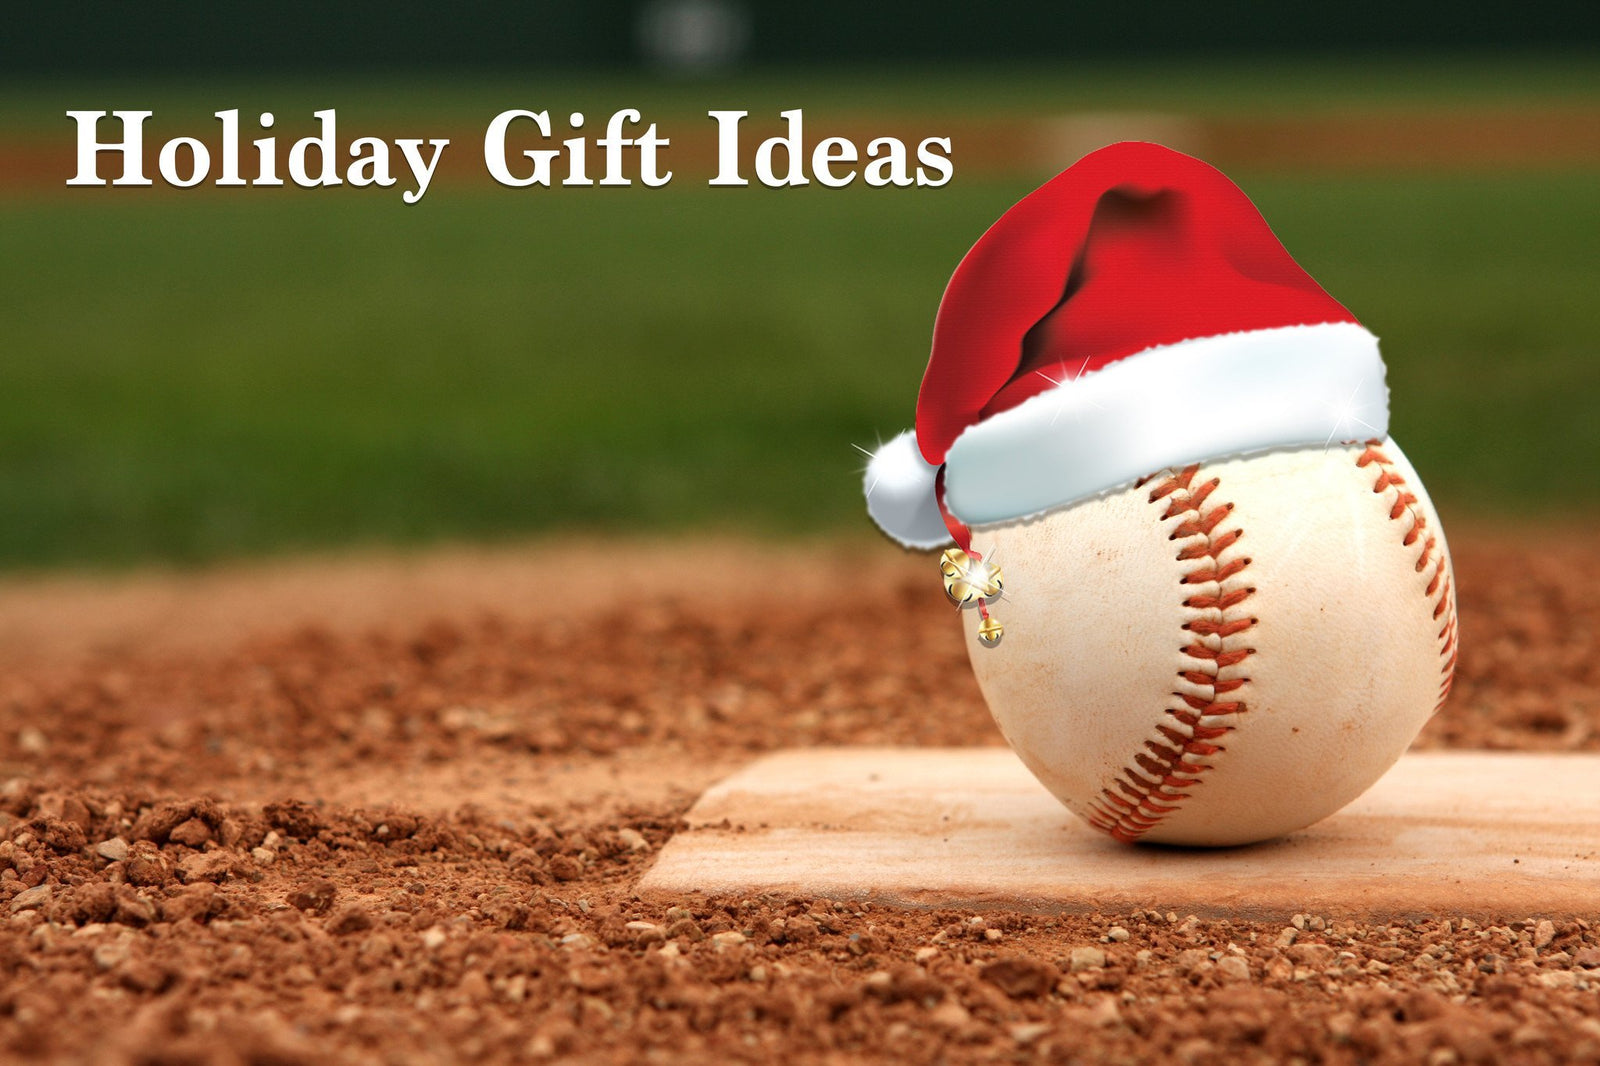 Holiday Gift Ideas For Baseball Or Softball Player In Your